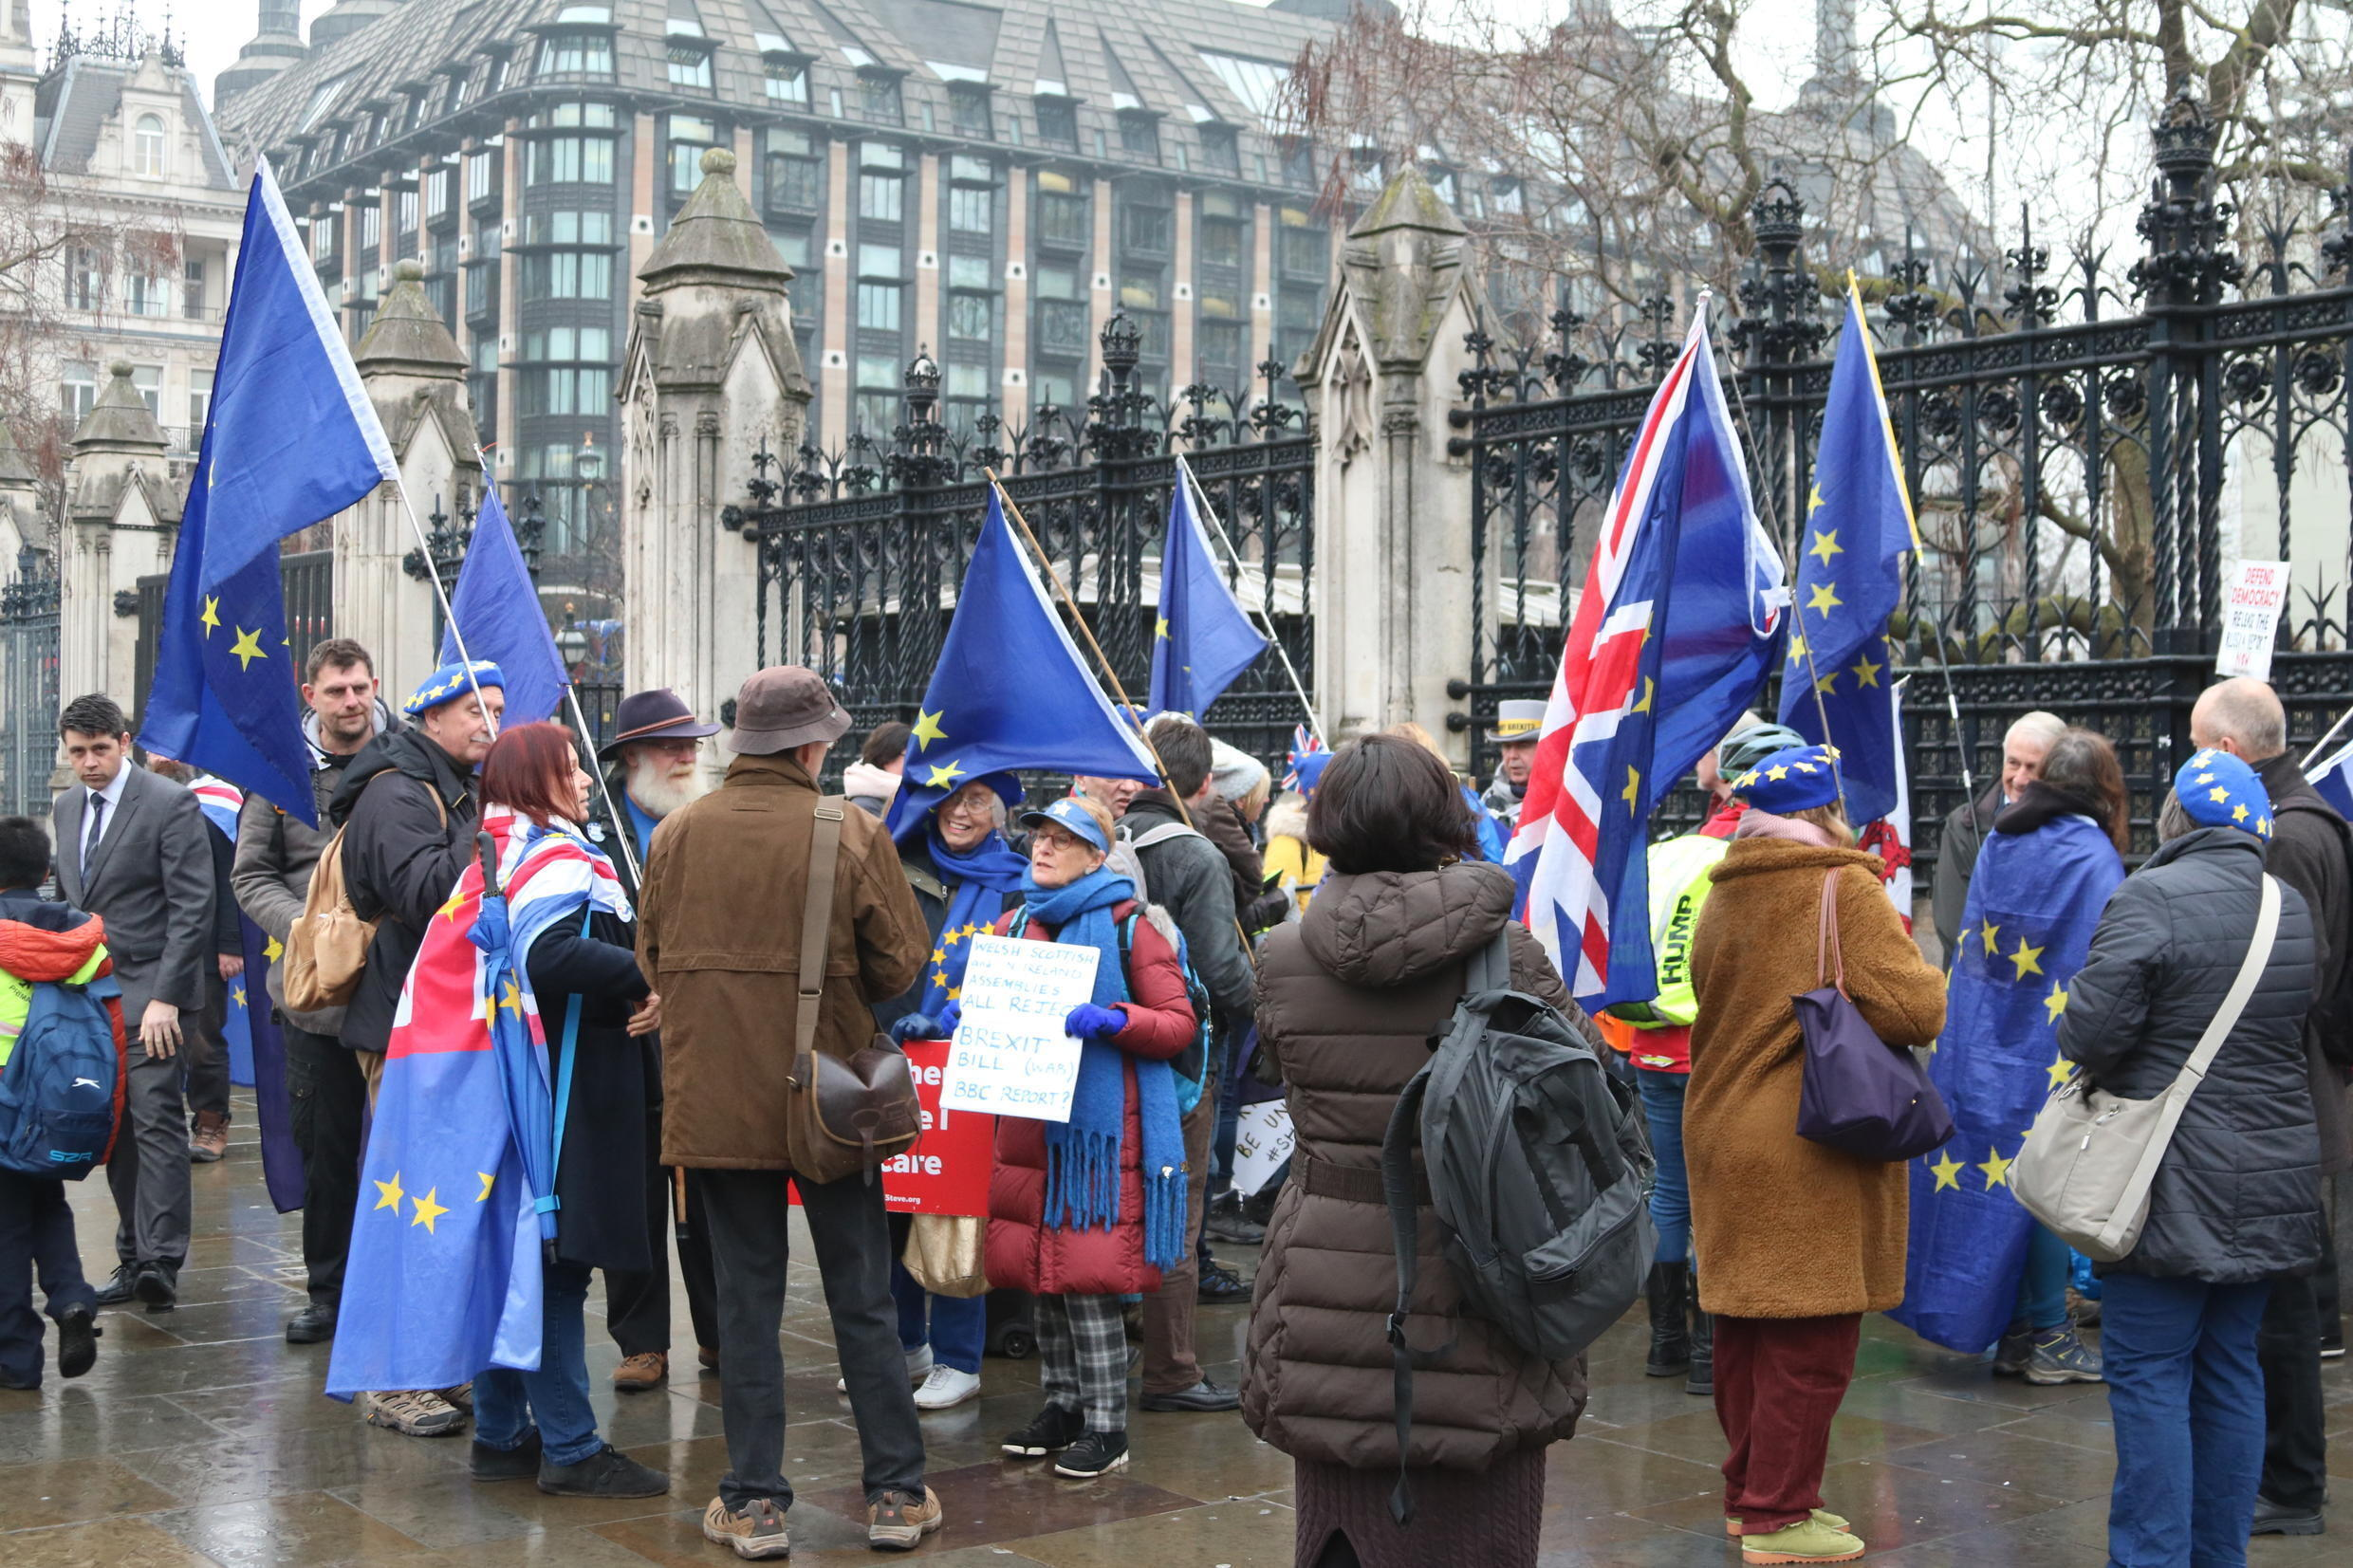 Anti-Brexit protesters at Westminster